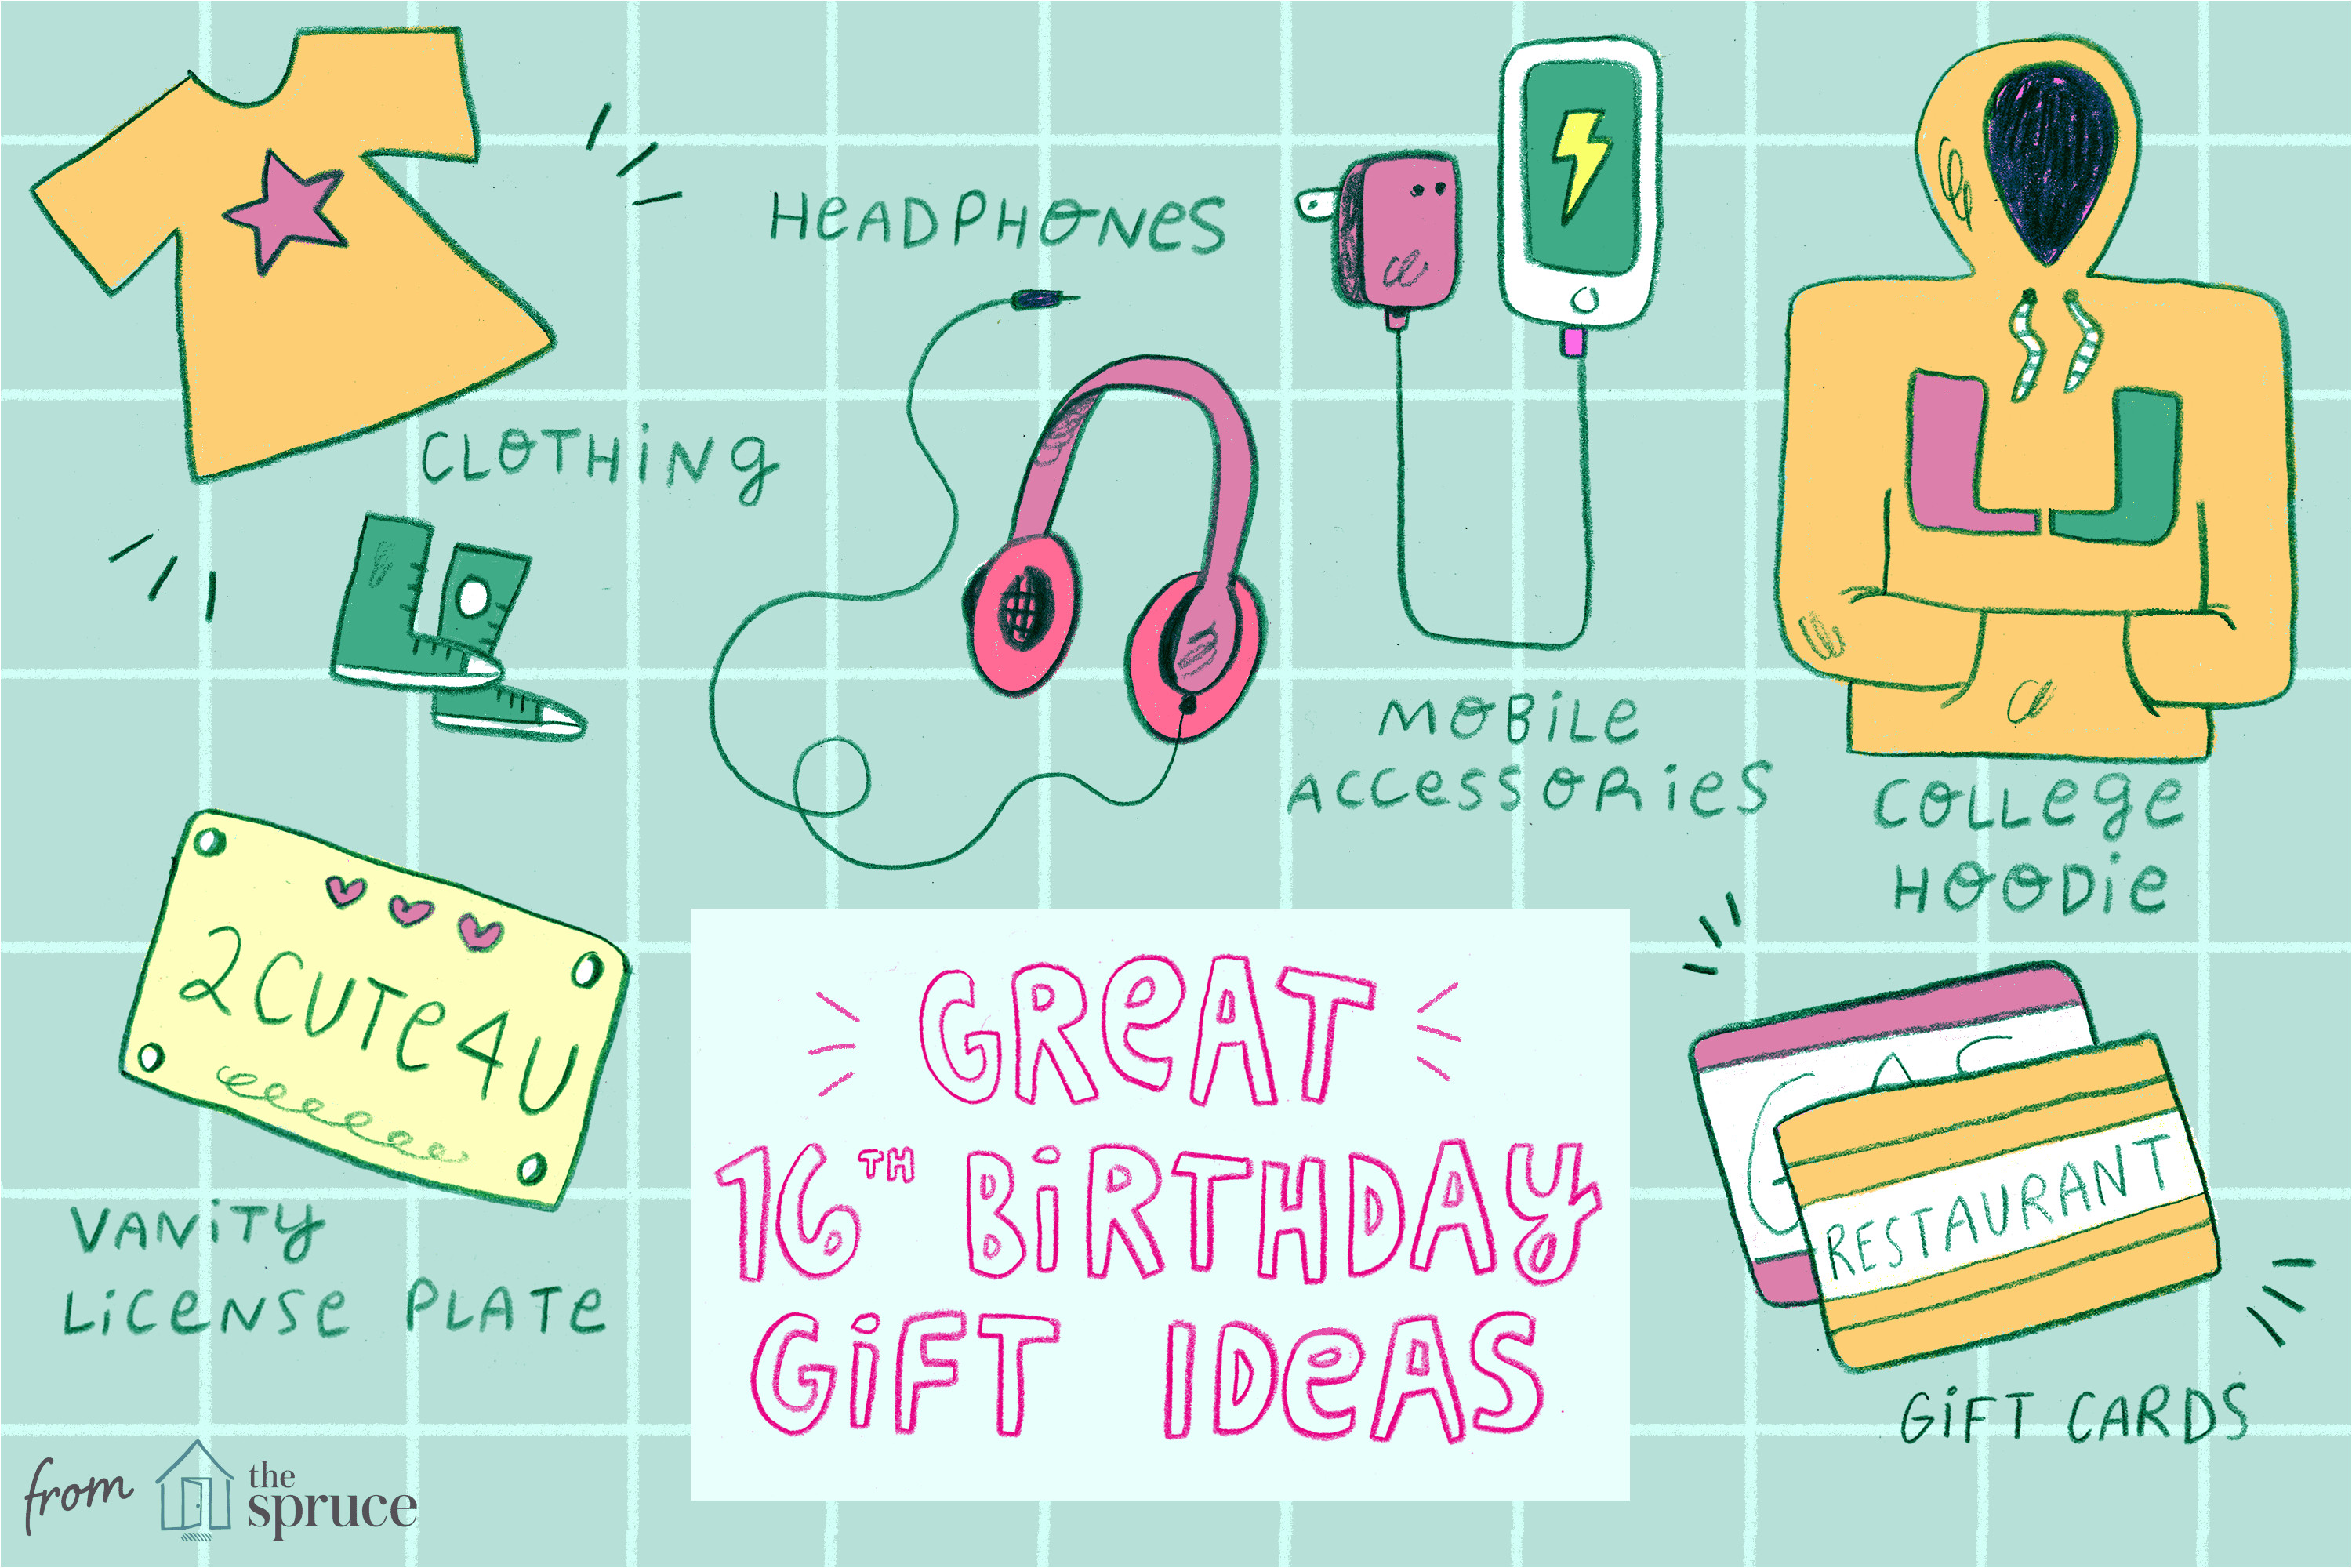 Sweet 16 Birthday Gifts 4038490 V3 5b50da96c9e77c001a377174 Png